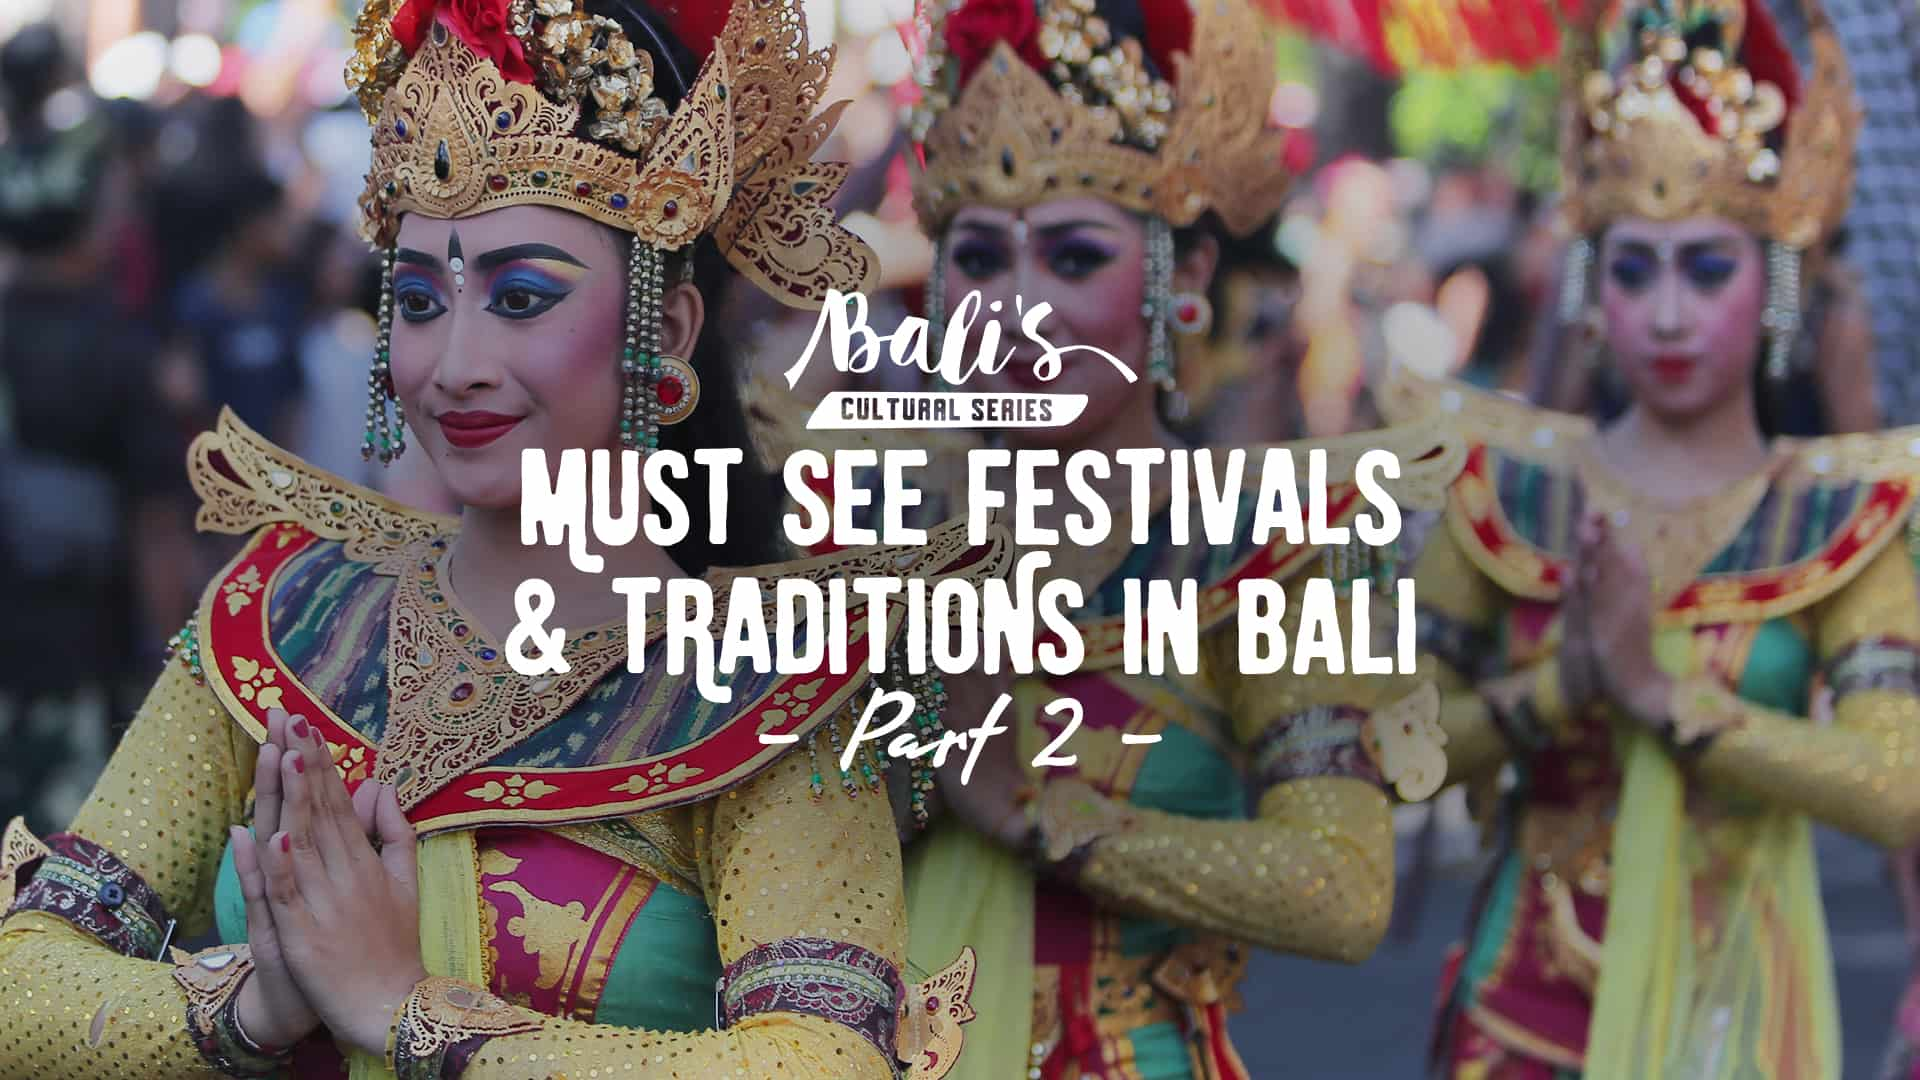 must see traditional dan festival in bali